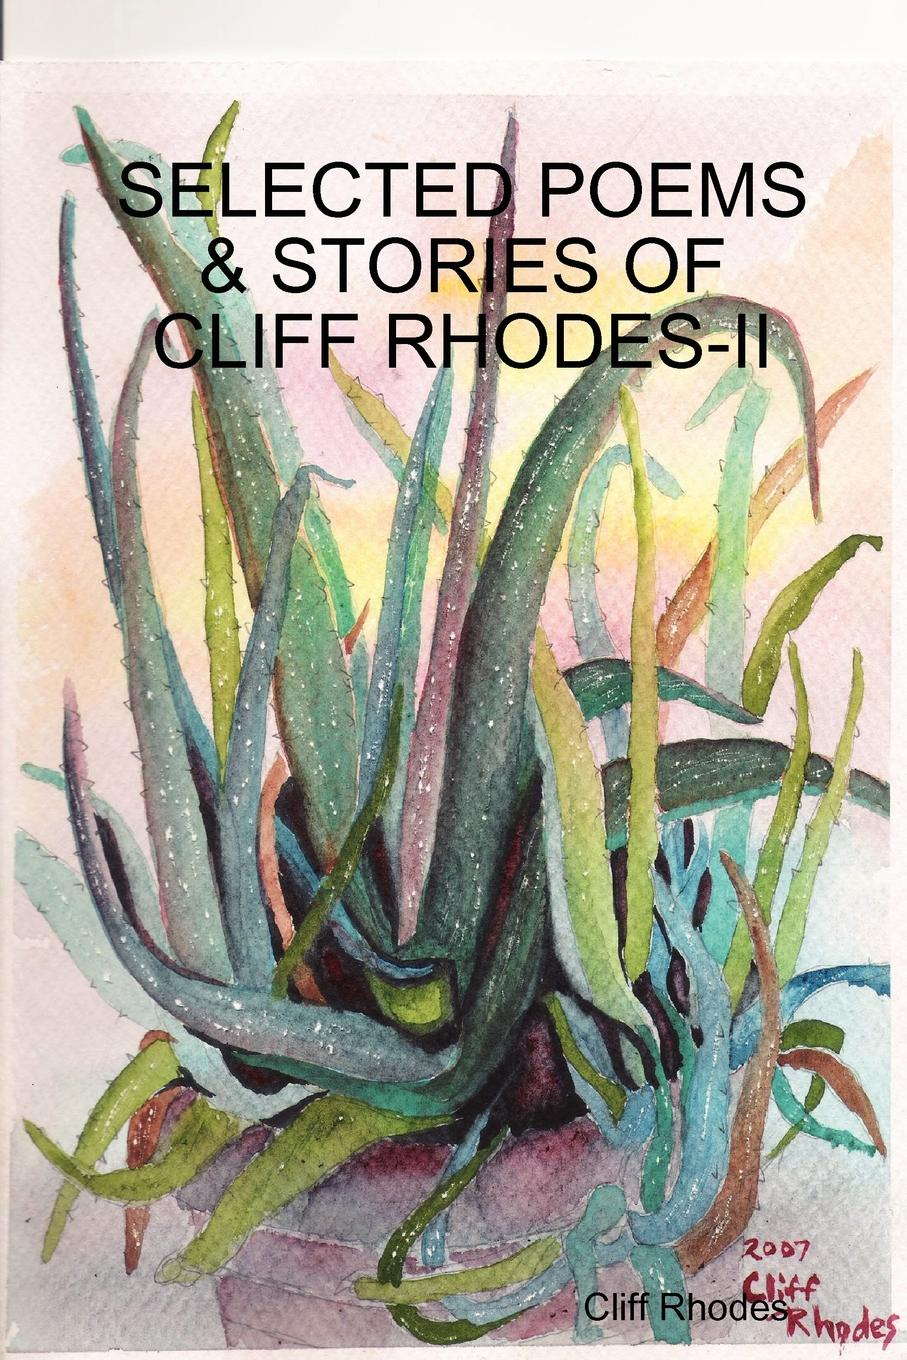 Cliff Rhodes SELECTED POEMS, STORIES, . WRITINGS OF CLIFF RHODES - II charents yeghishe poems of yeghishe charent